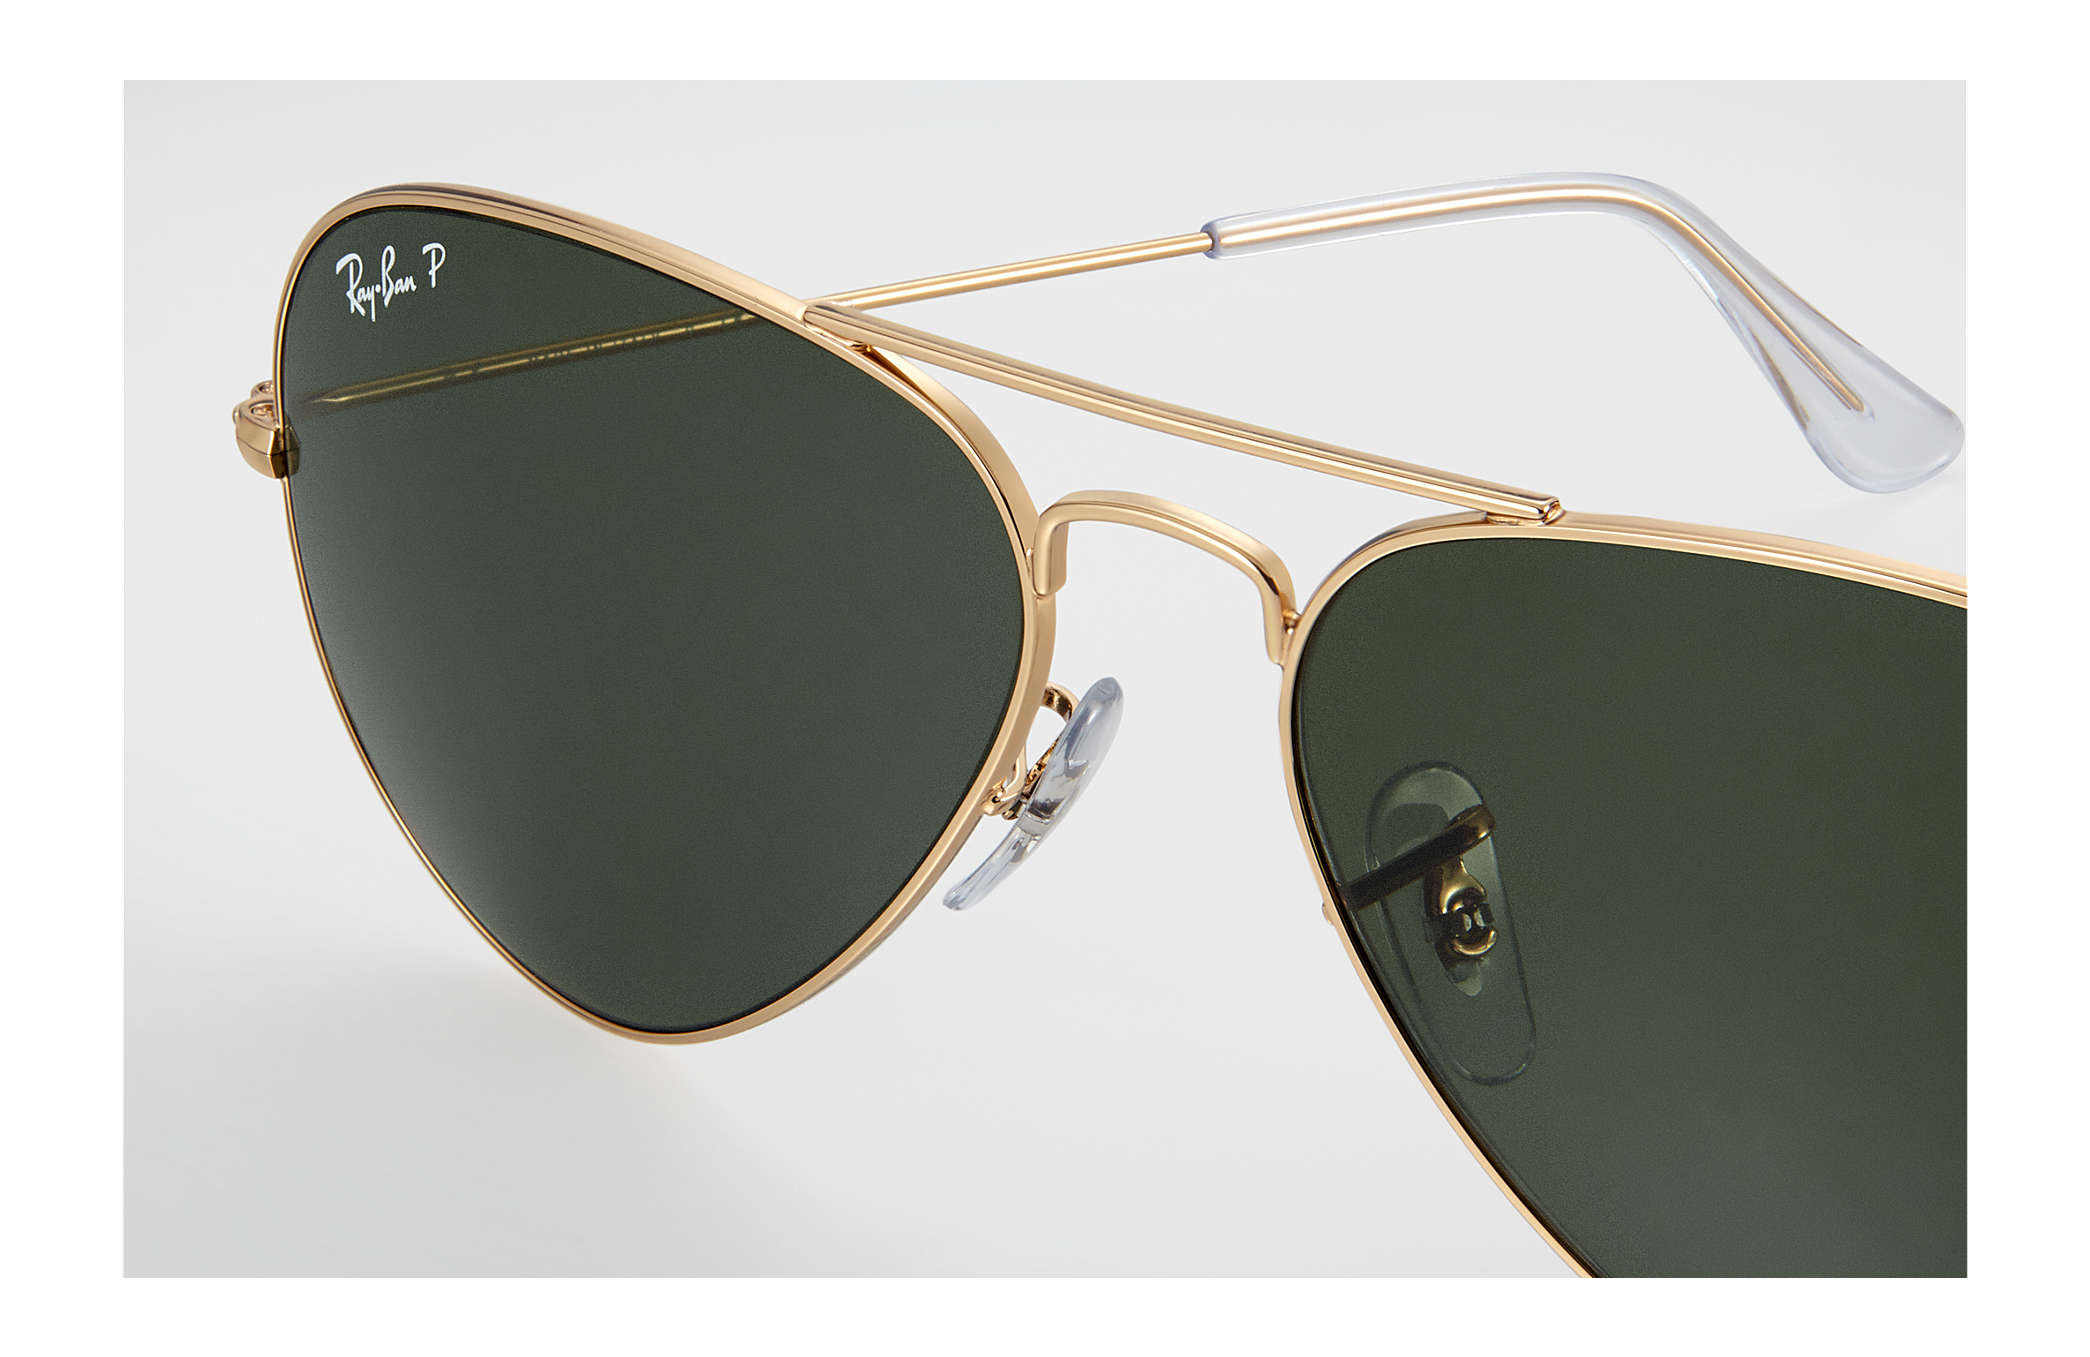 48ce6d8dba5cef Ray-Ban Aviator Classic RB3025 Gold - Metal - Green Polarized Lenses ...